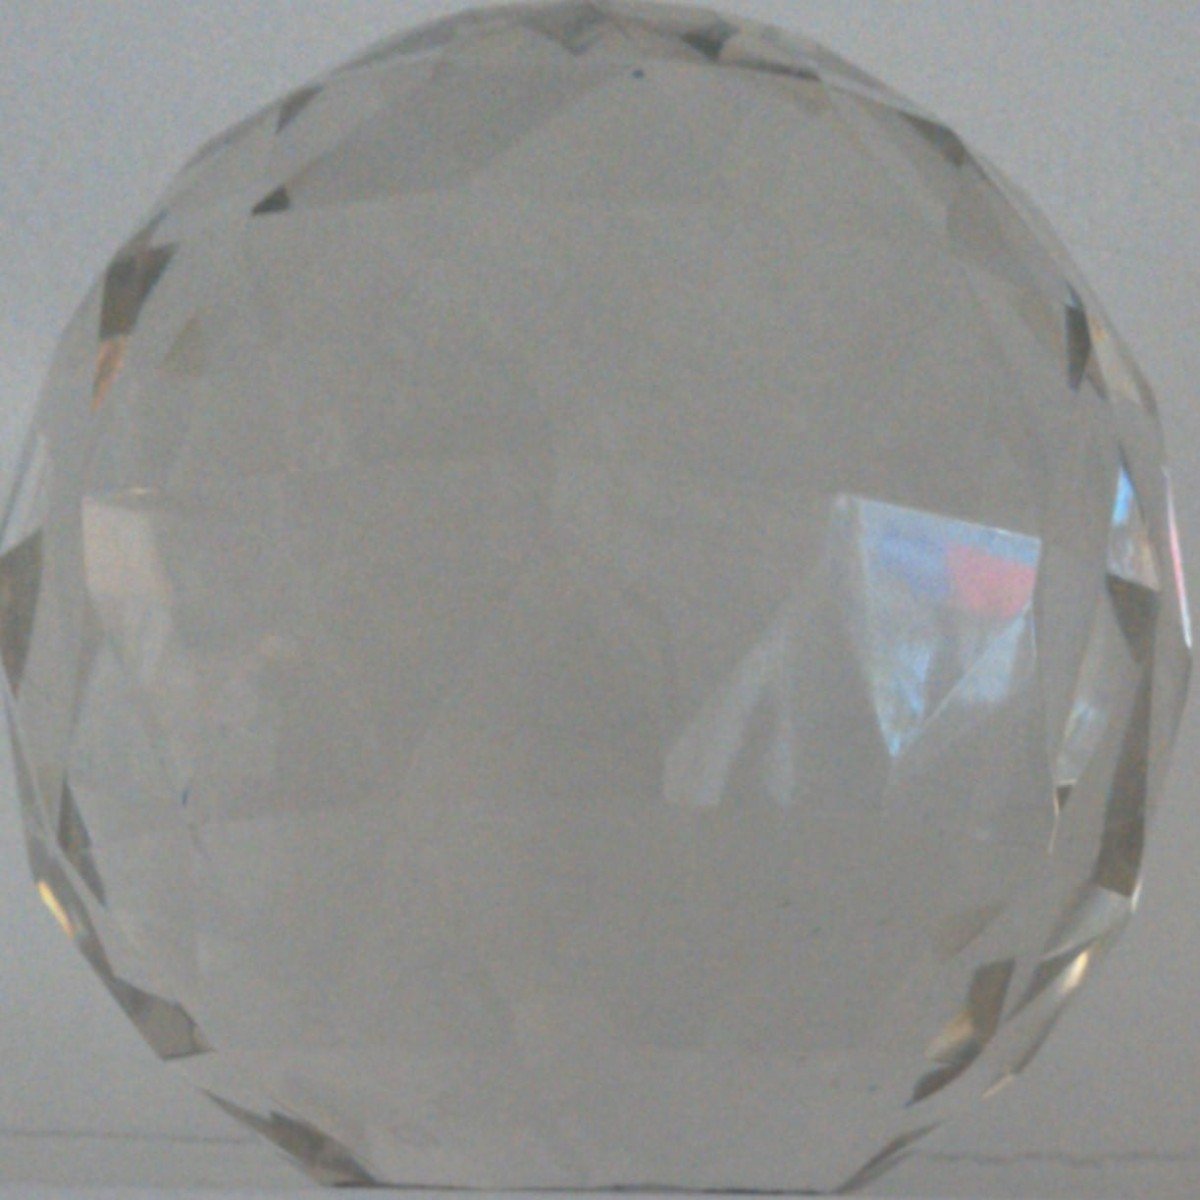 Beautiful Prism Ball at Henley Circle Online Shop